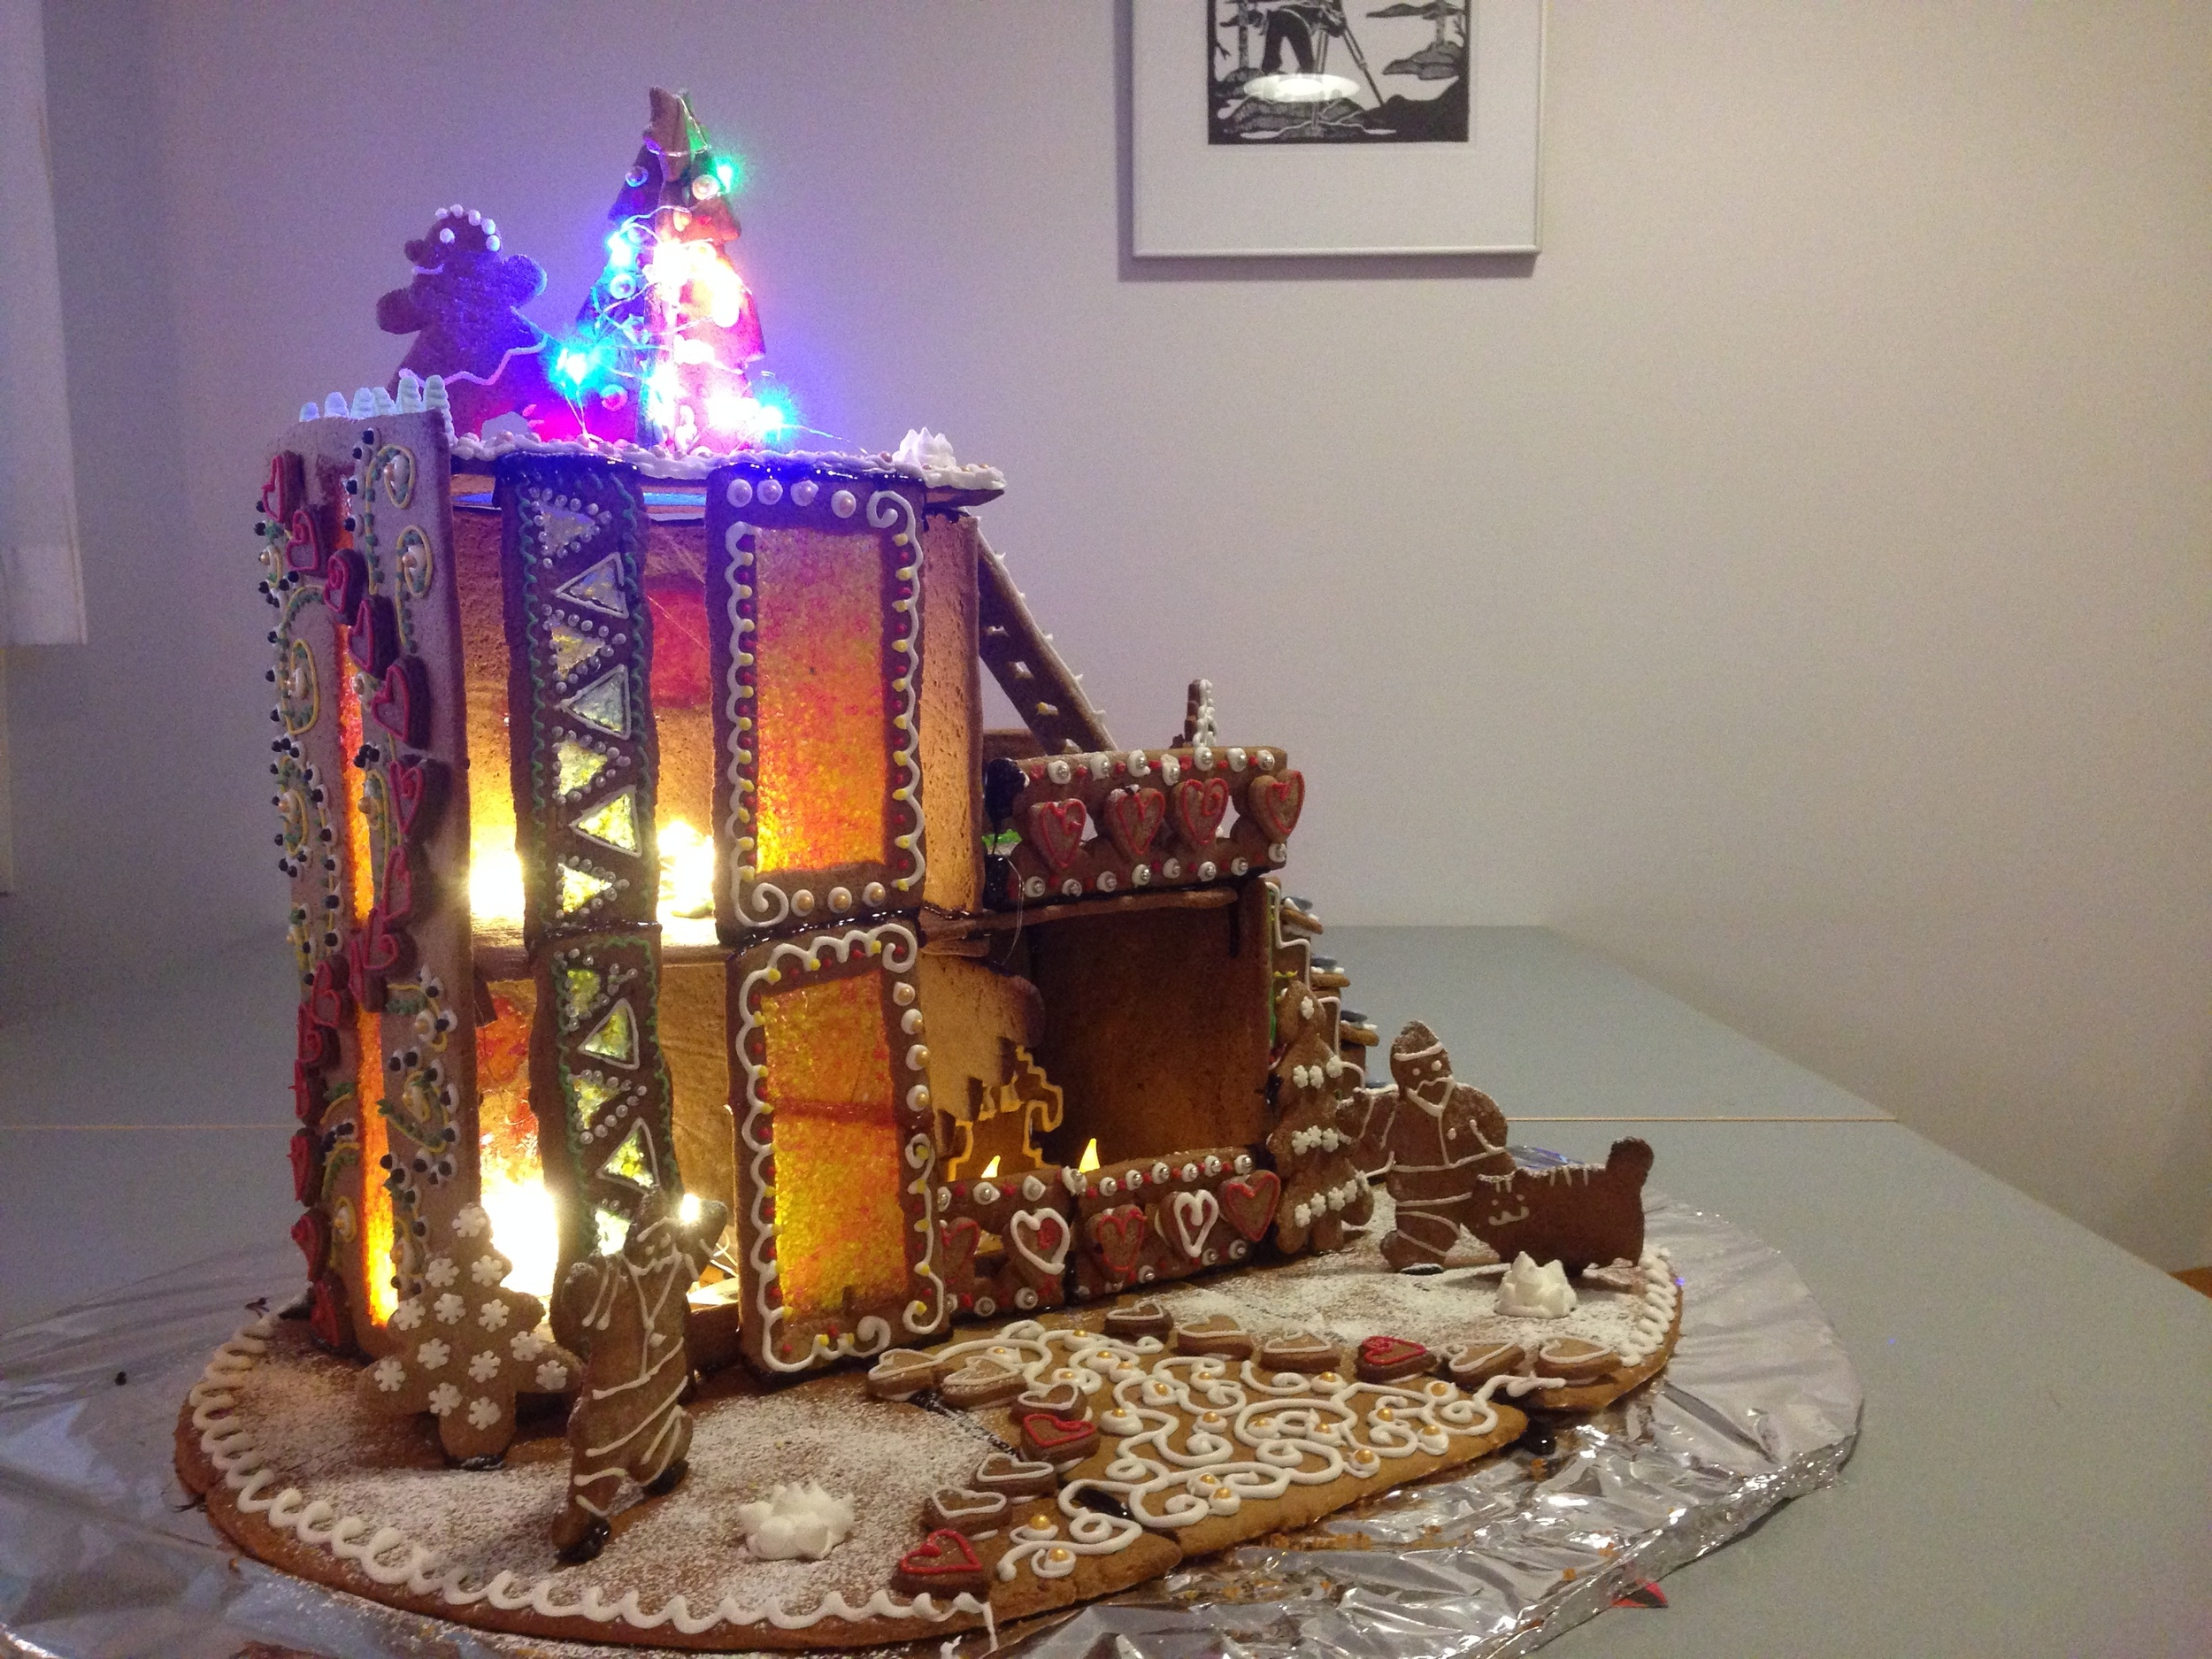 The LAB team's gingerbread house, auctioned for charity!